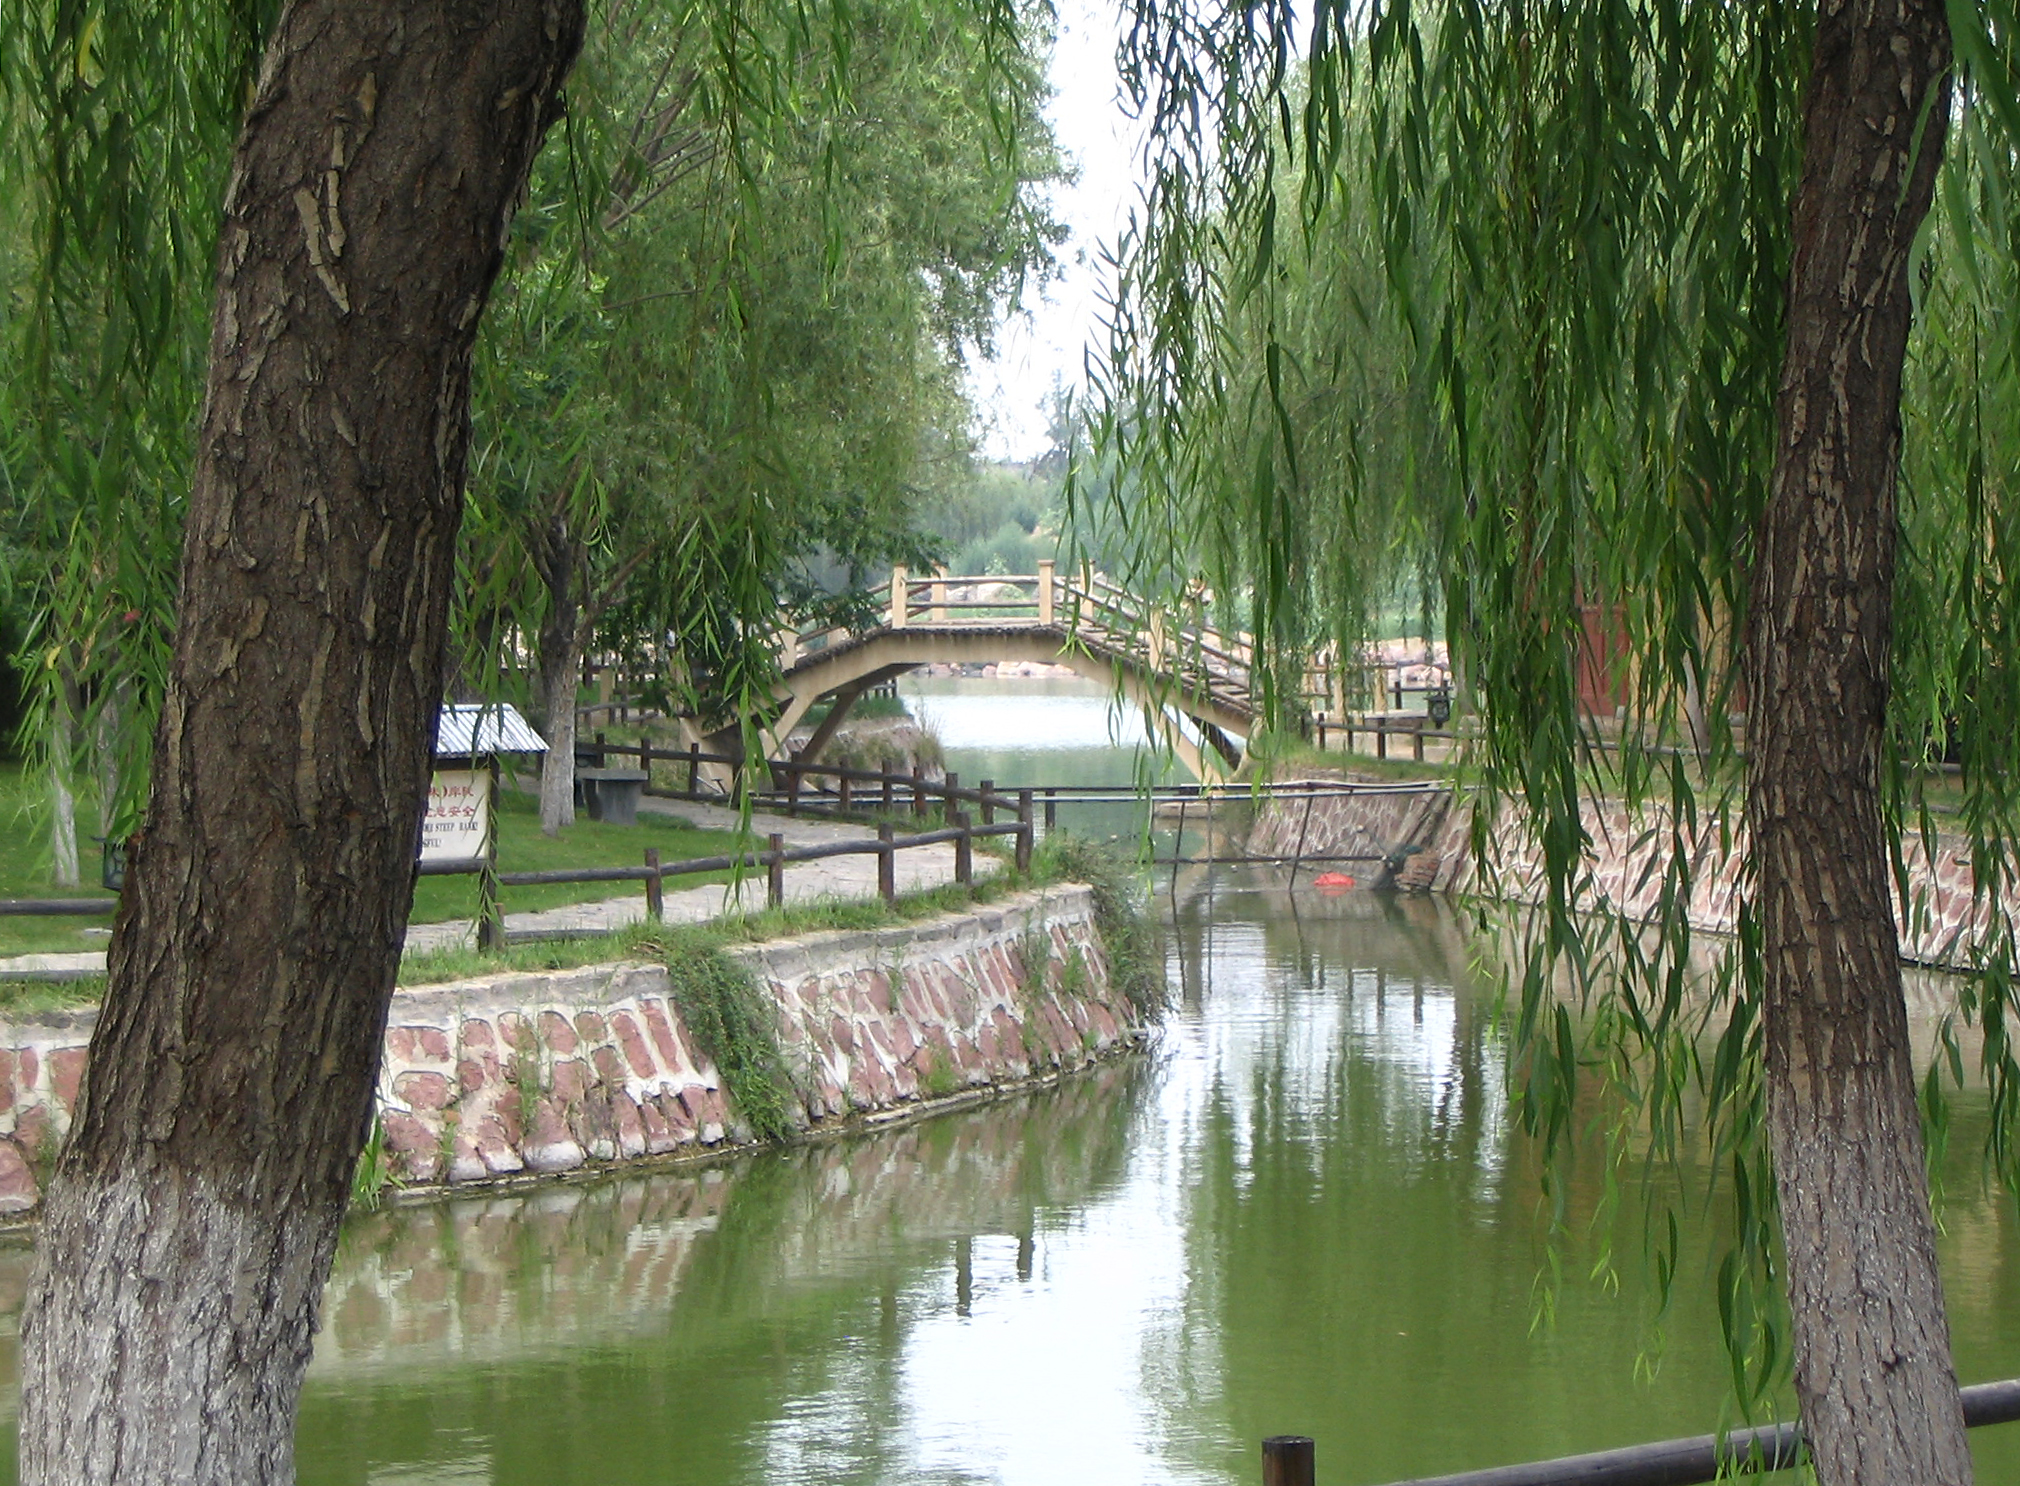 Small Bridge at Qingming Riverside Landscape Garden, Kaifeng, China. Photo taken on July 19, 2005.